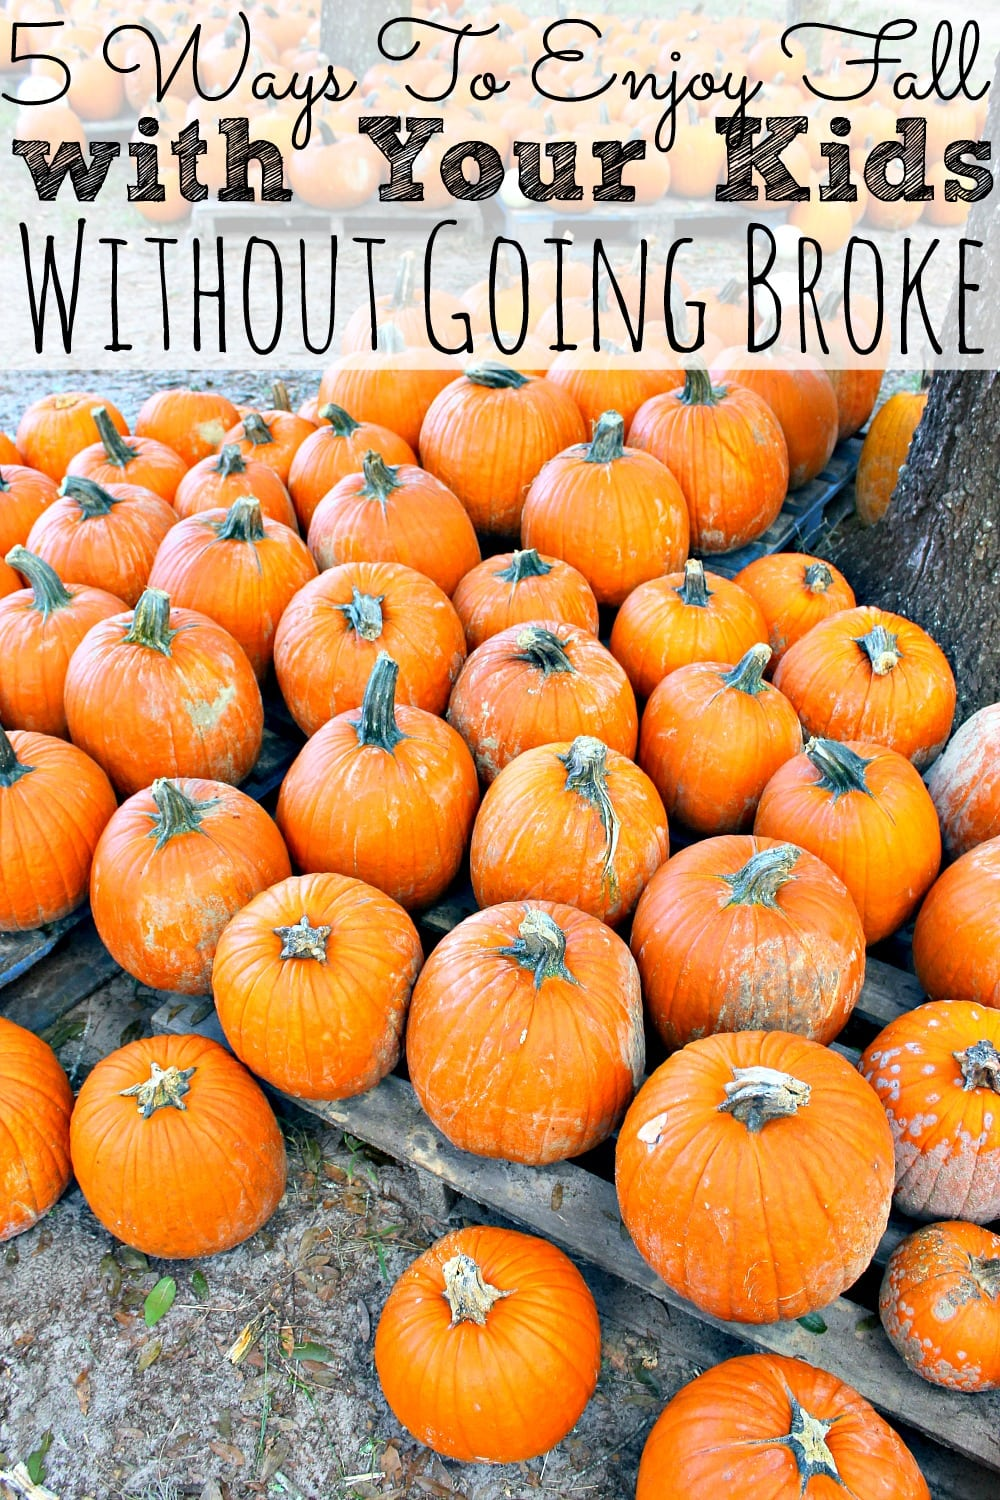 5 Ways To Enjoy Fall With Your Kids Without Going Broke - simplytodaylife.com